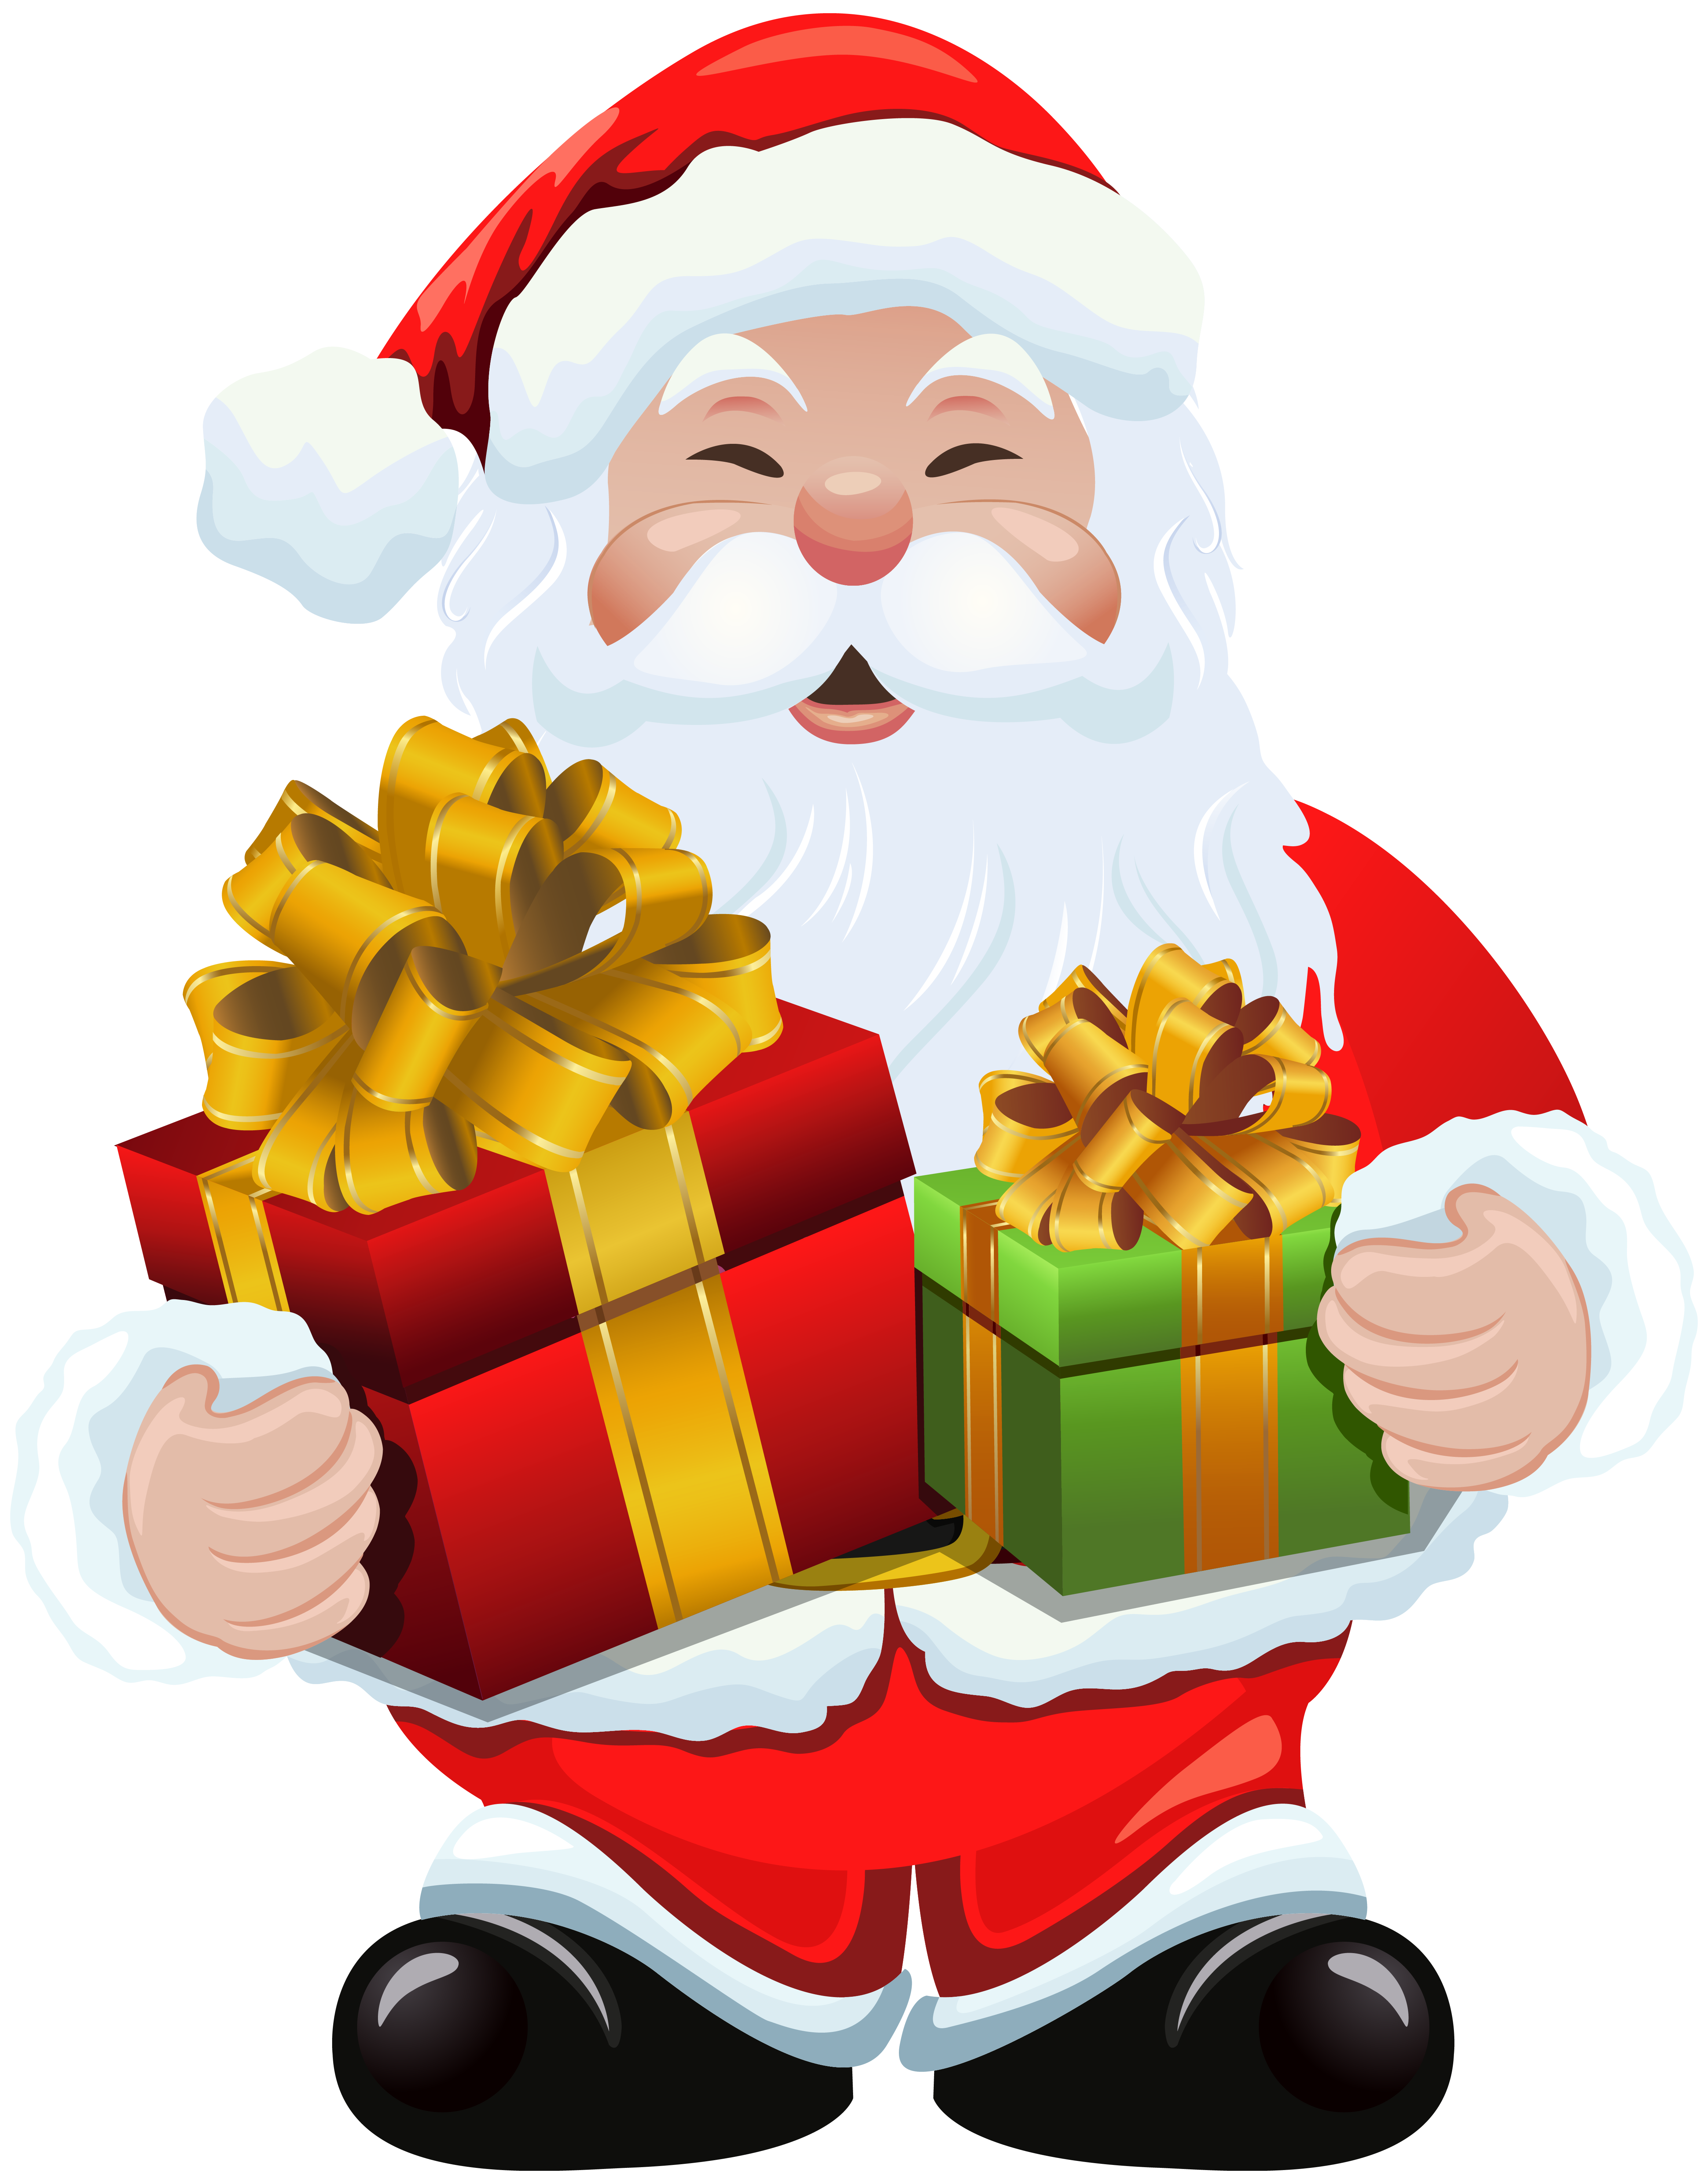 Free transparent santa christmas presents tower clipart jpg freeuse download Santa With Presents Png & Free Santa With Presents.png Transparent ... jpg freeuse download